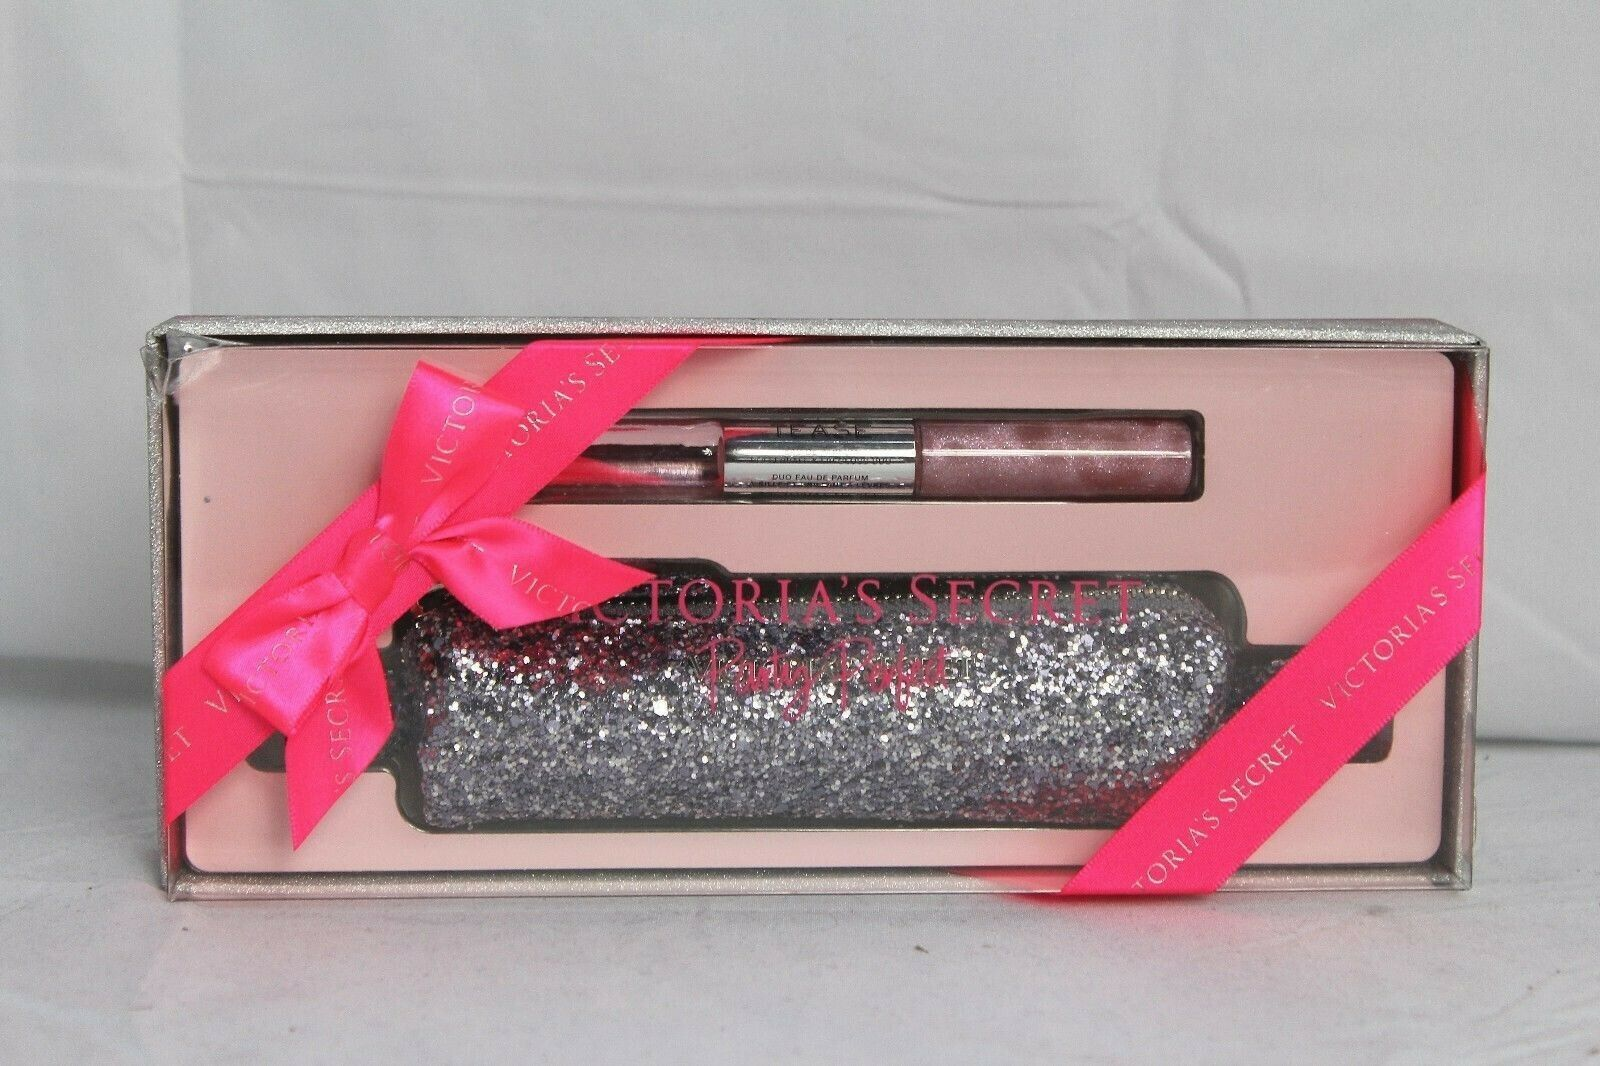 Victoria's Secret~Party Perfect~Noir Tease~EDP Rollerball+Lip Gloss+glitter case image 3